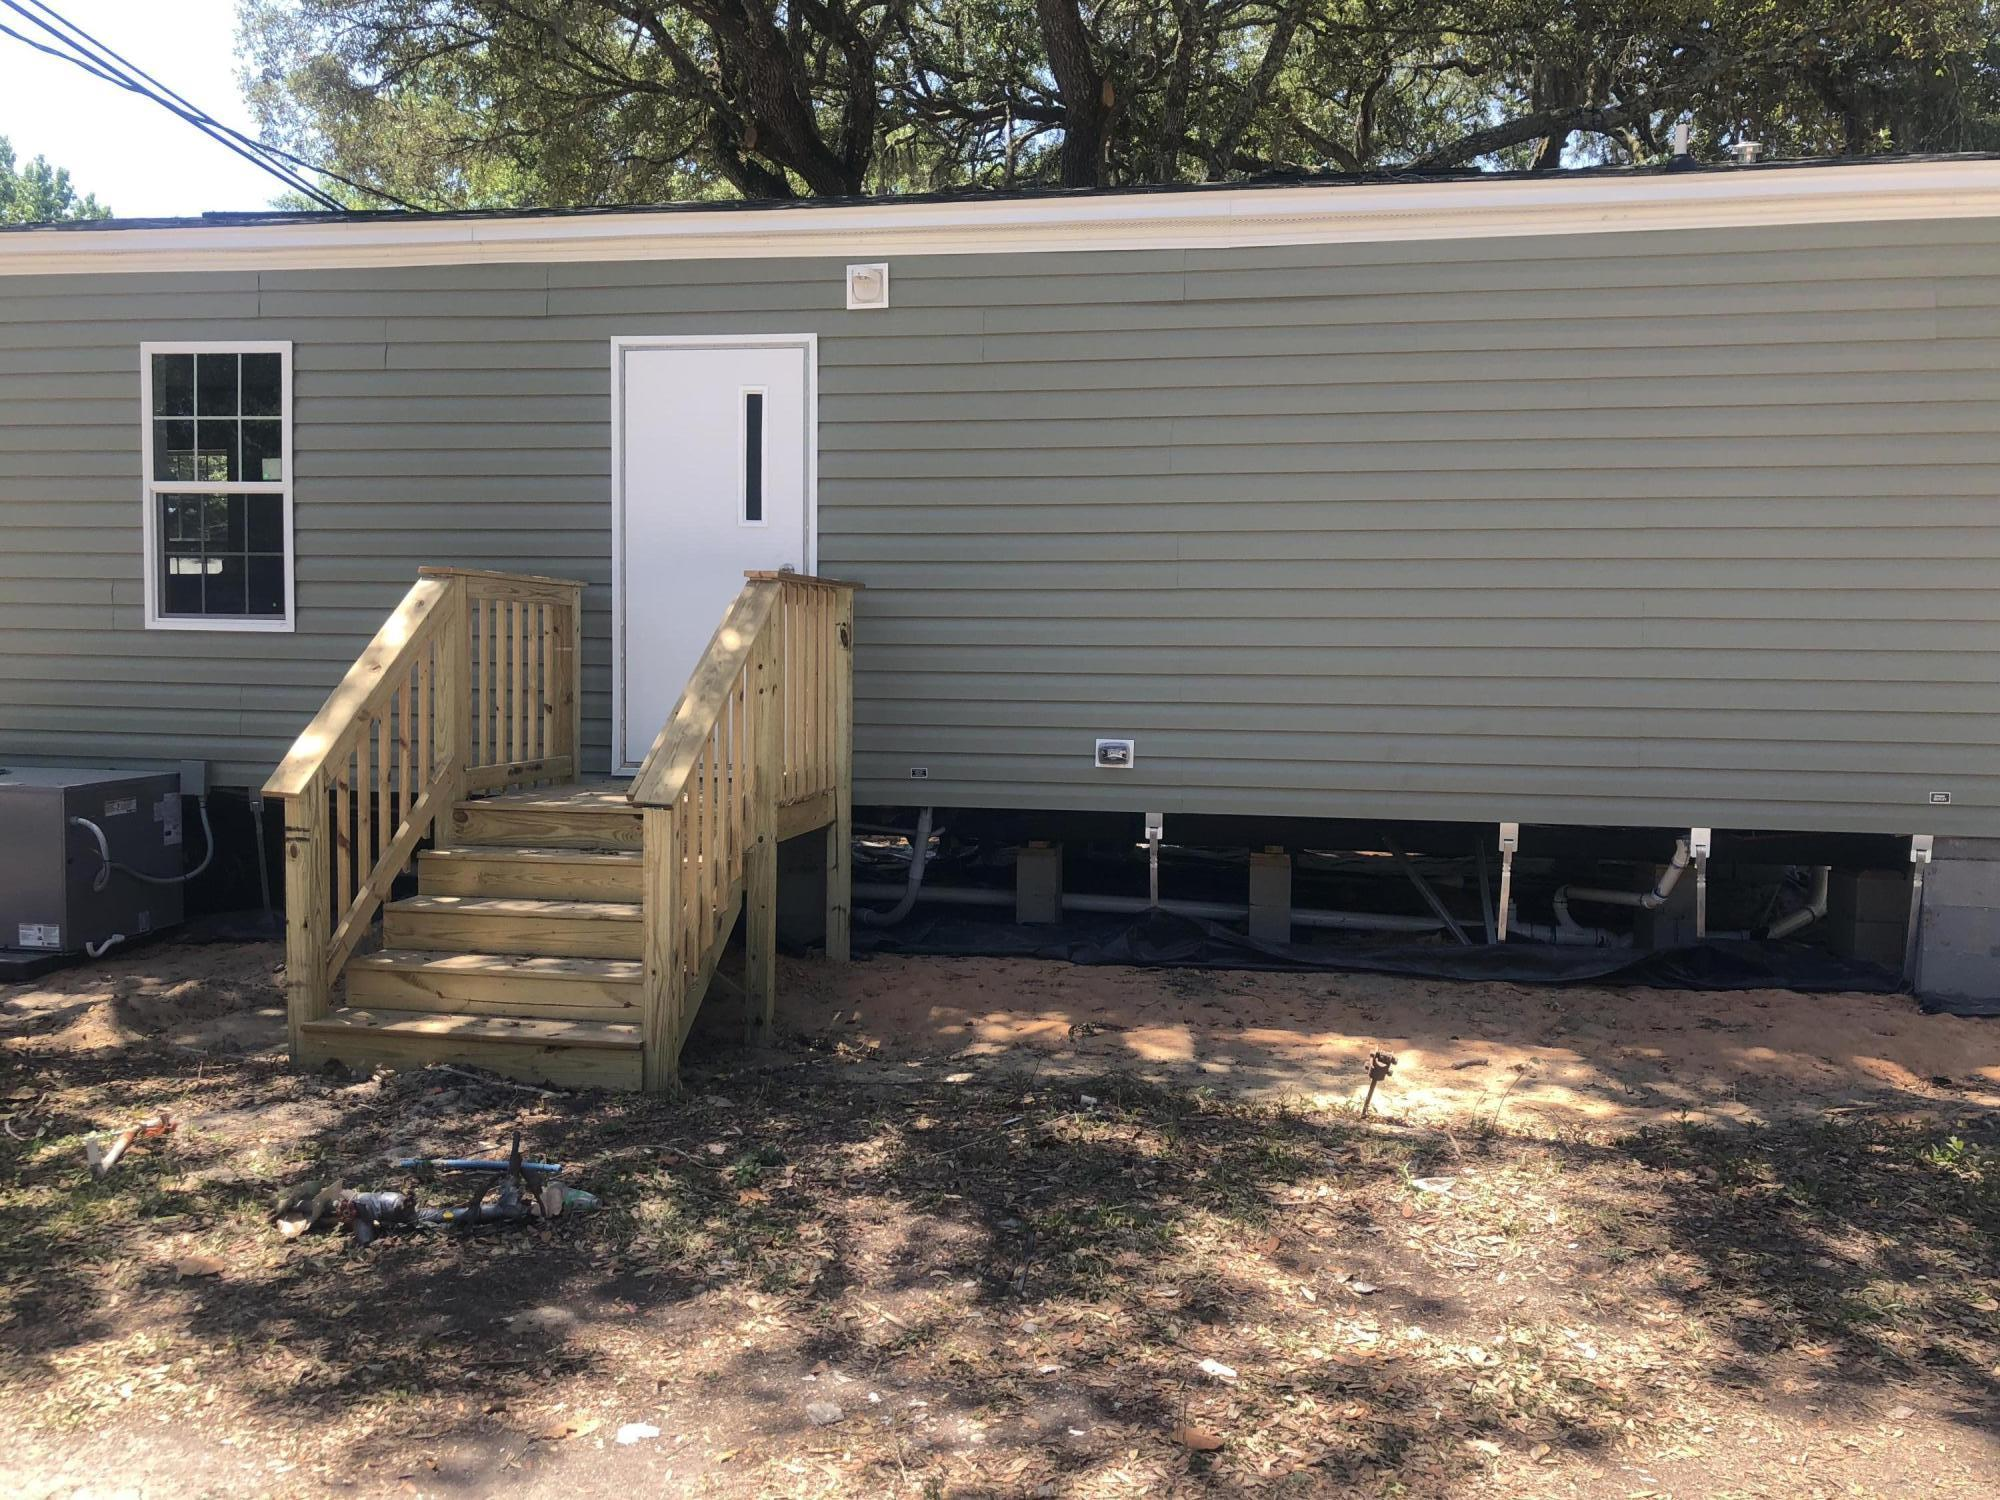 WATERFRONT MOBILE HOME PARK NEW 2 BEDROOM 2 FULL BATHROOMS mobile home park in the heart of Ft. Walt